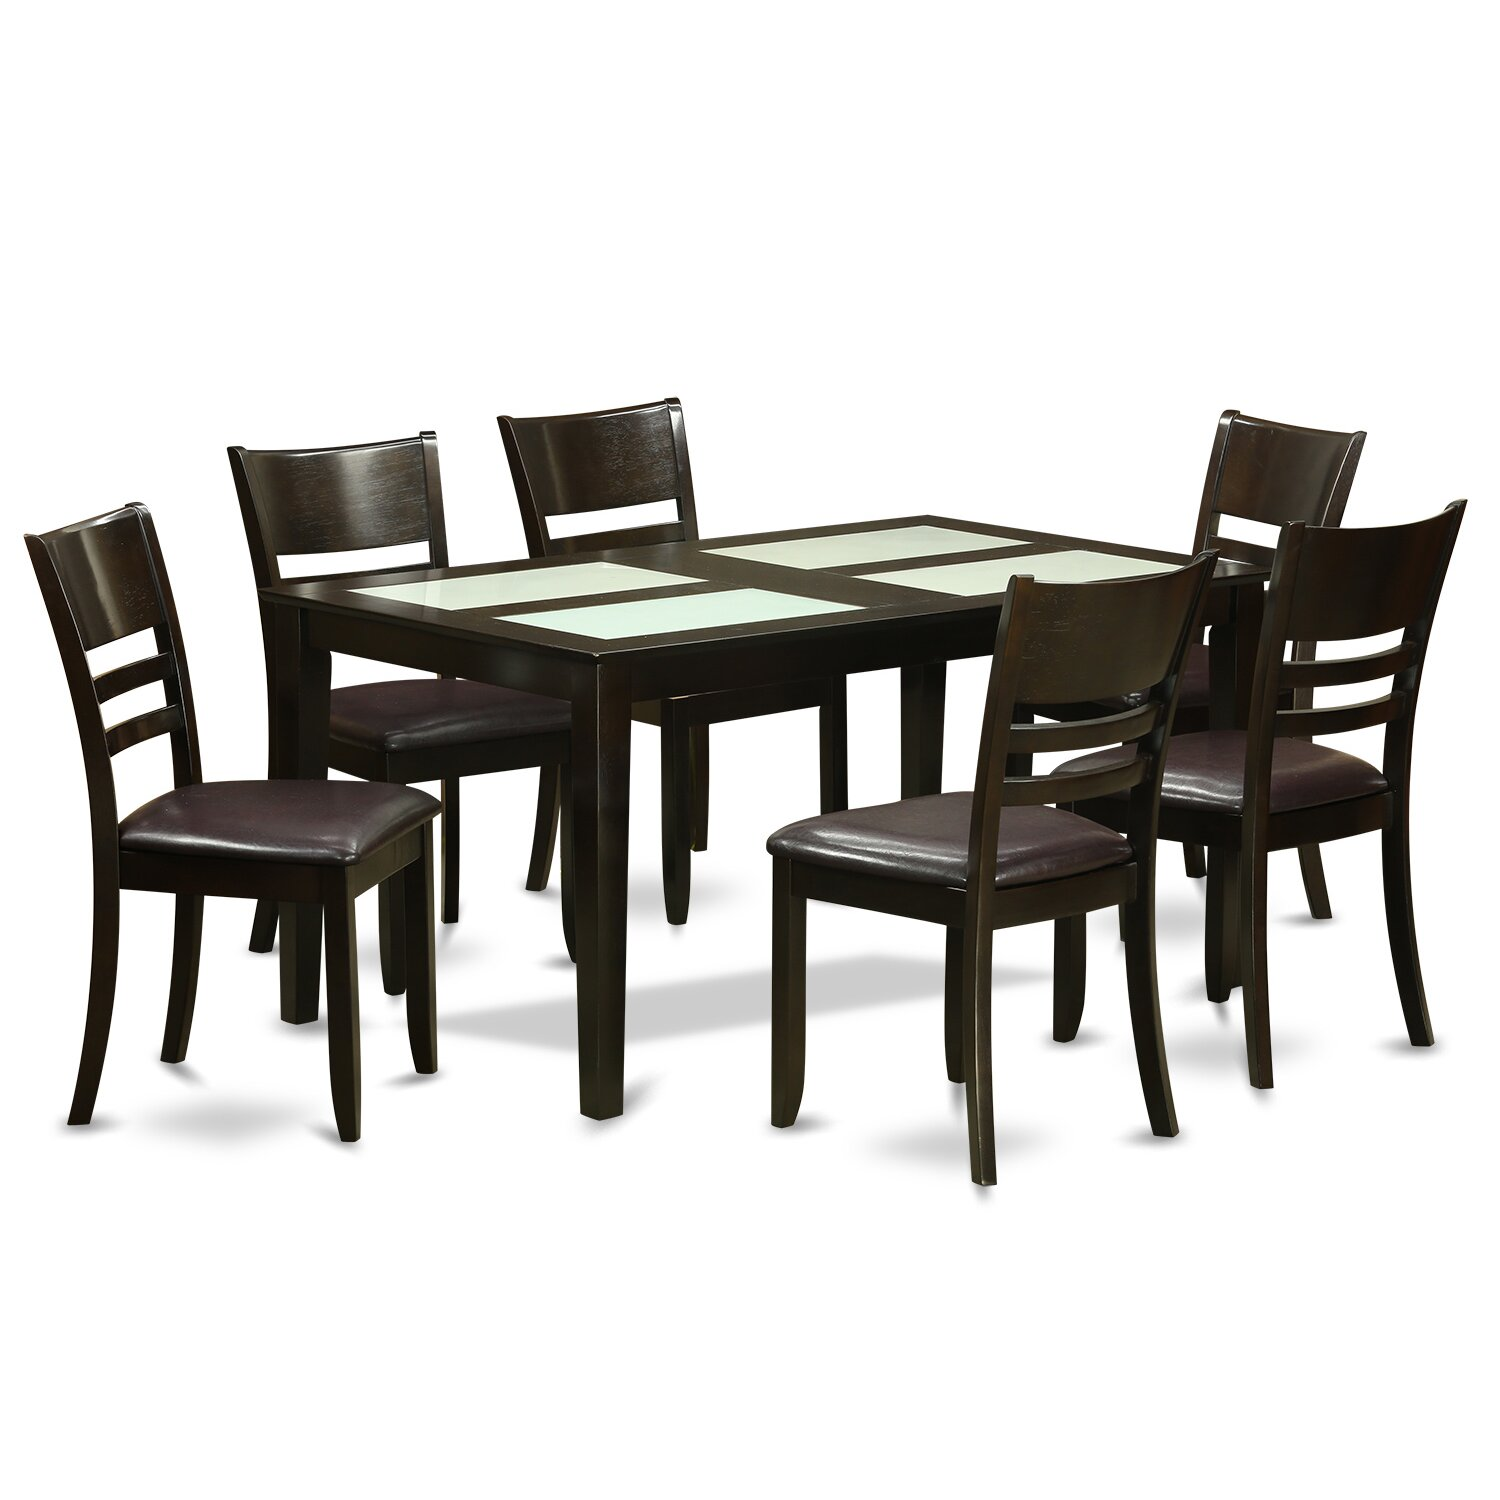 Wooden importers capri 7 piece dining set wayfair for 7 piece dining set with bench